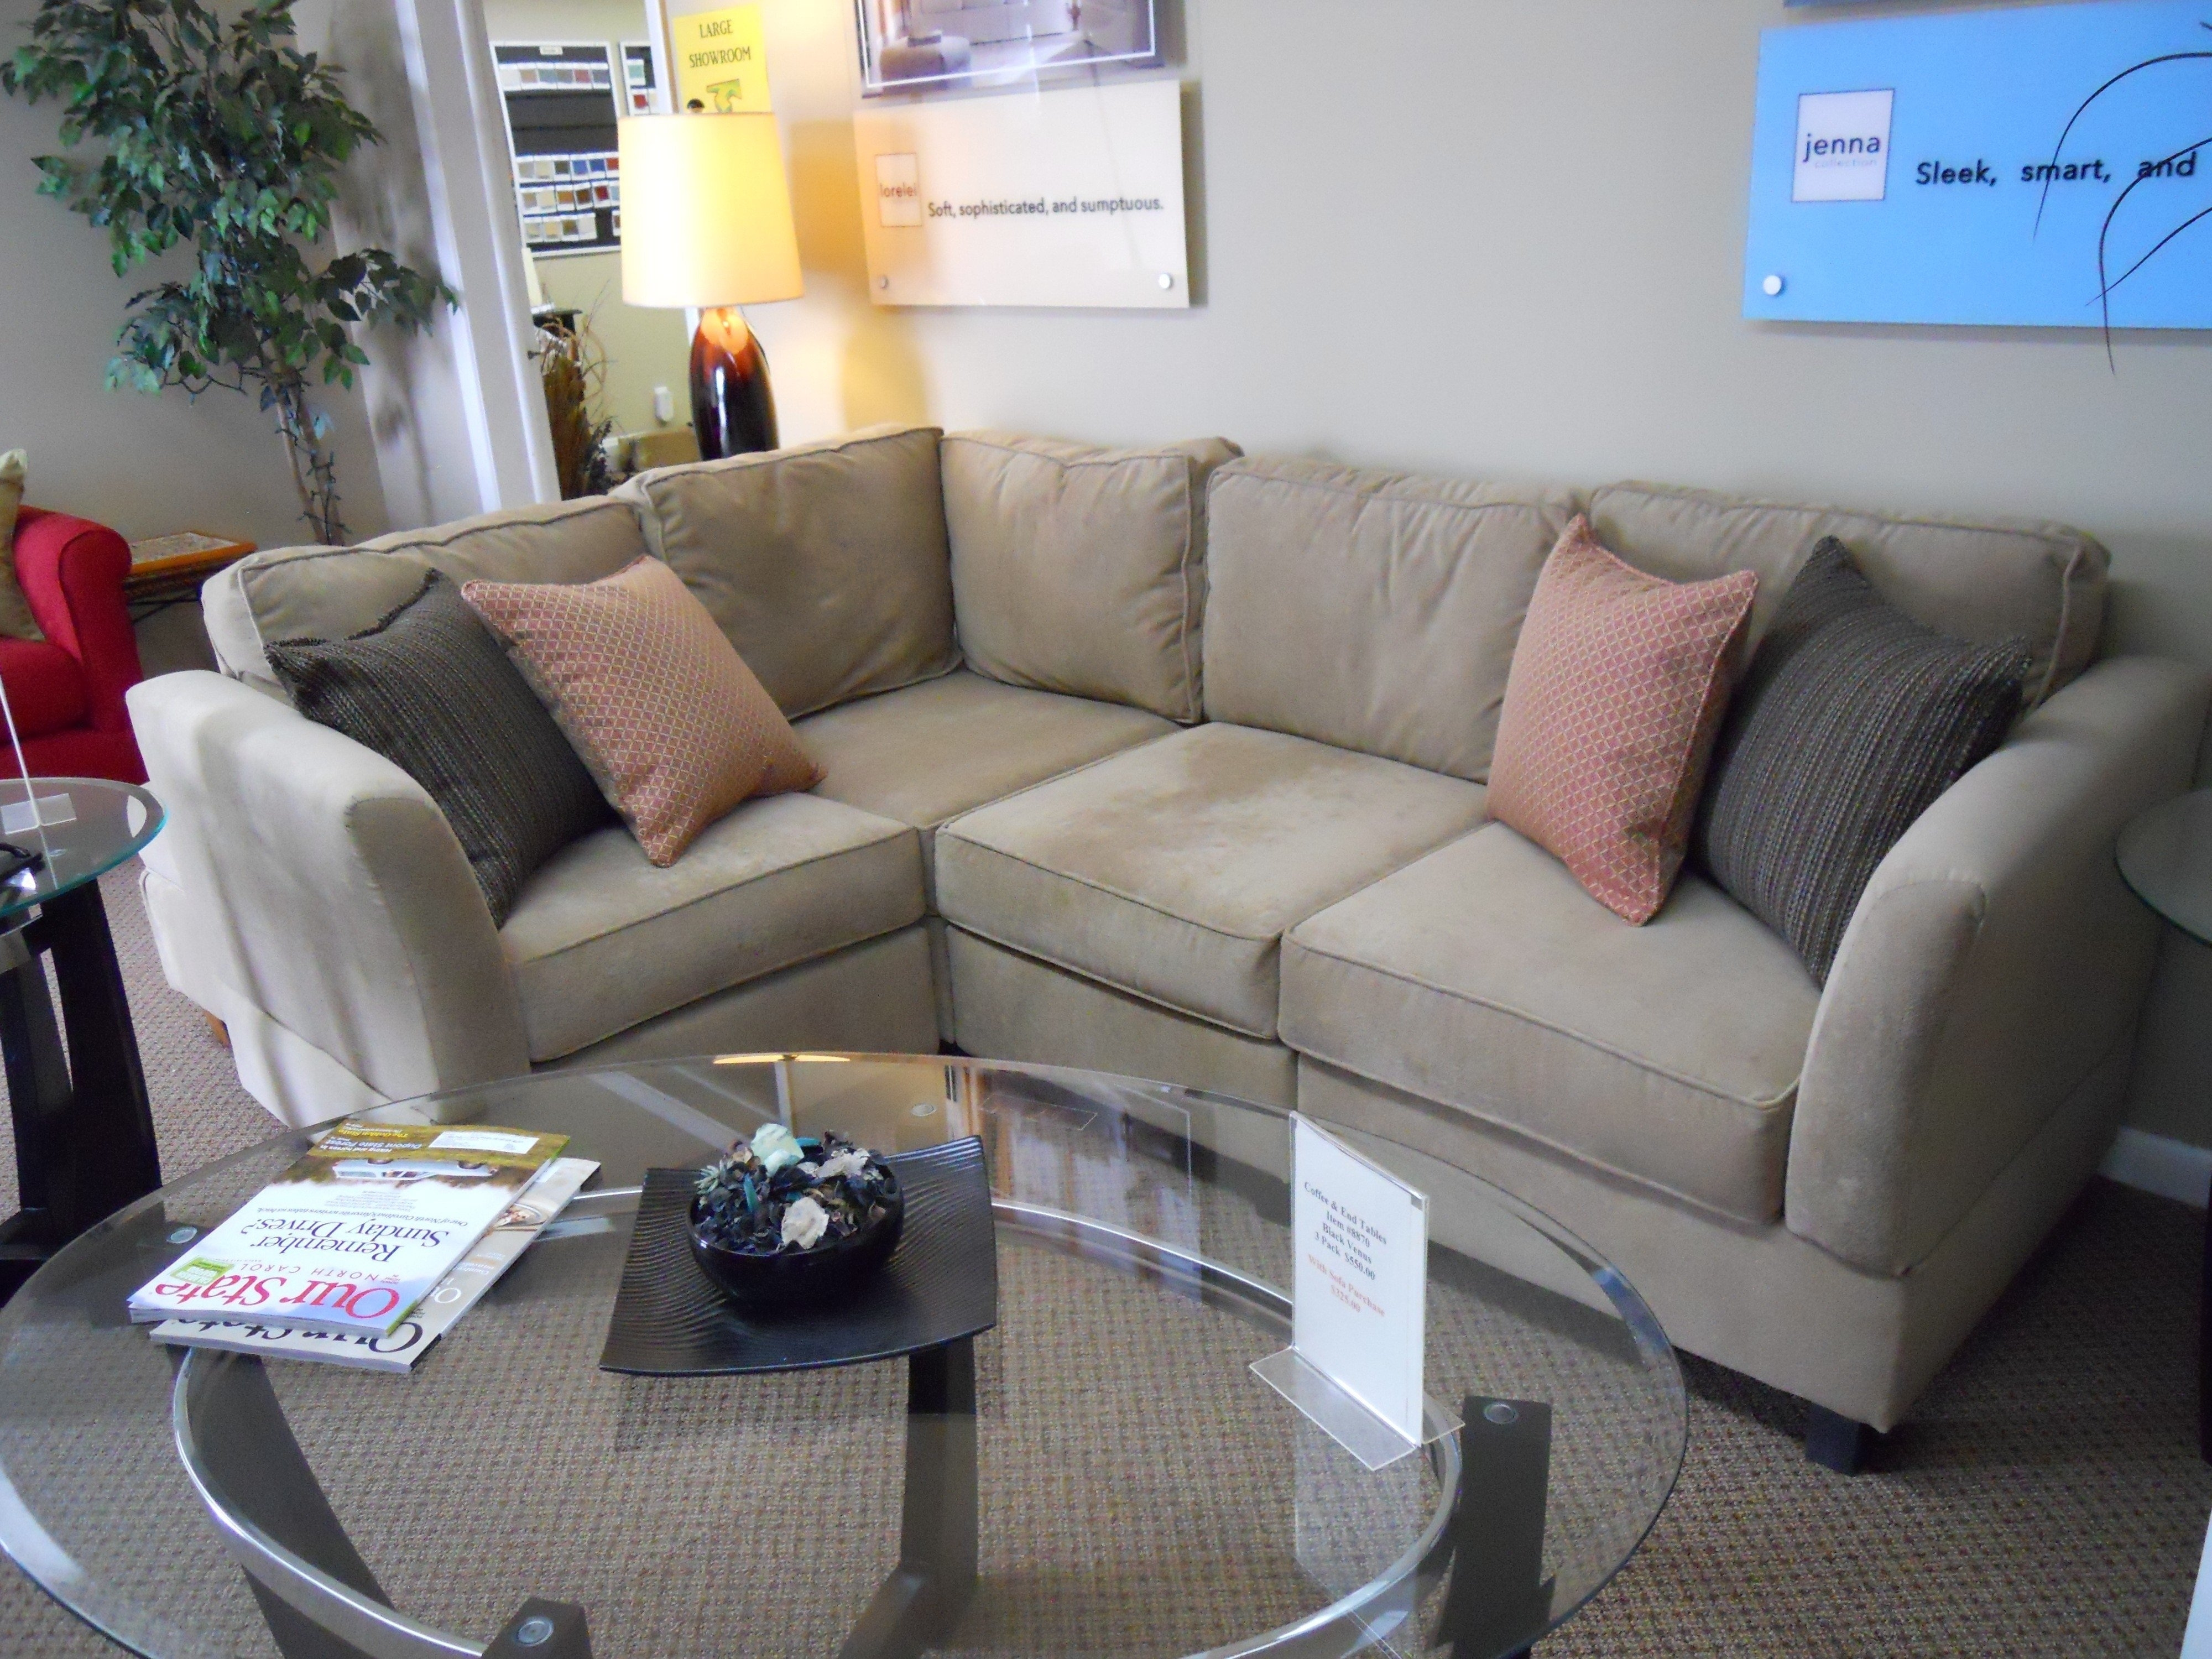 Reclining Sectional Sofas For Small Spaces W Script With Small Inside Sectional Sofas For Small Areas (View 8 of 10)